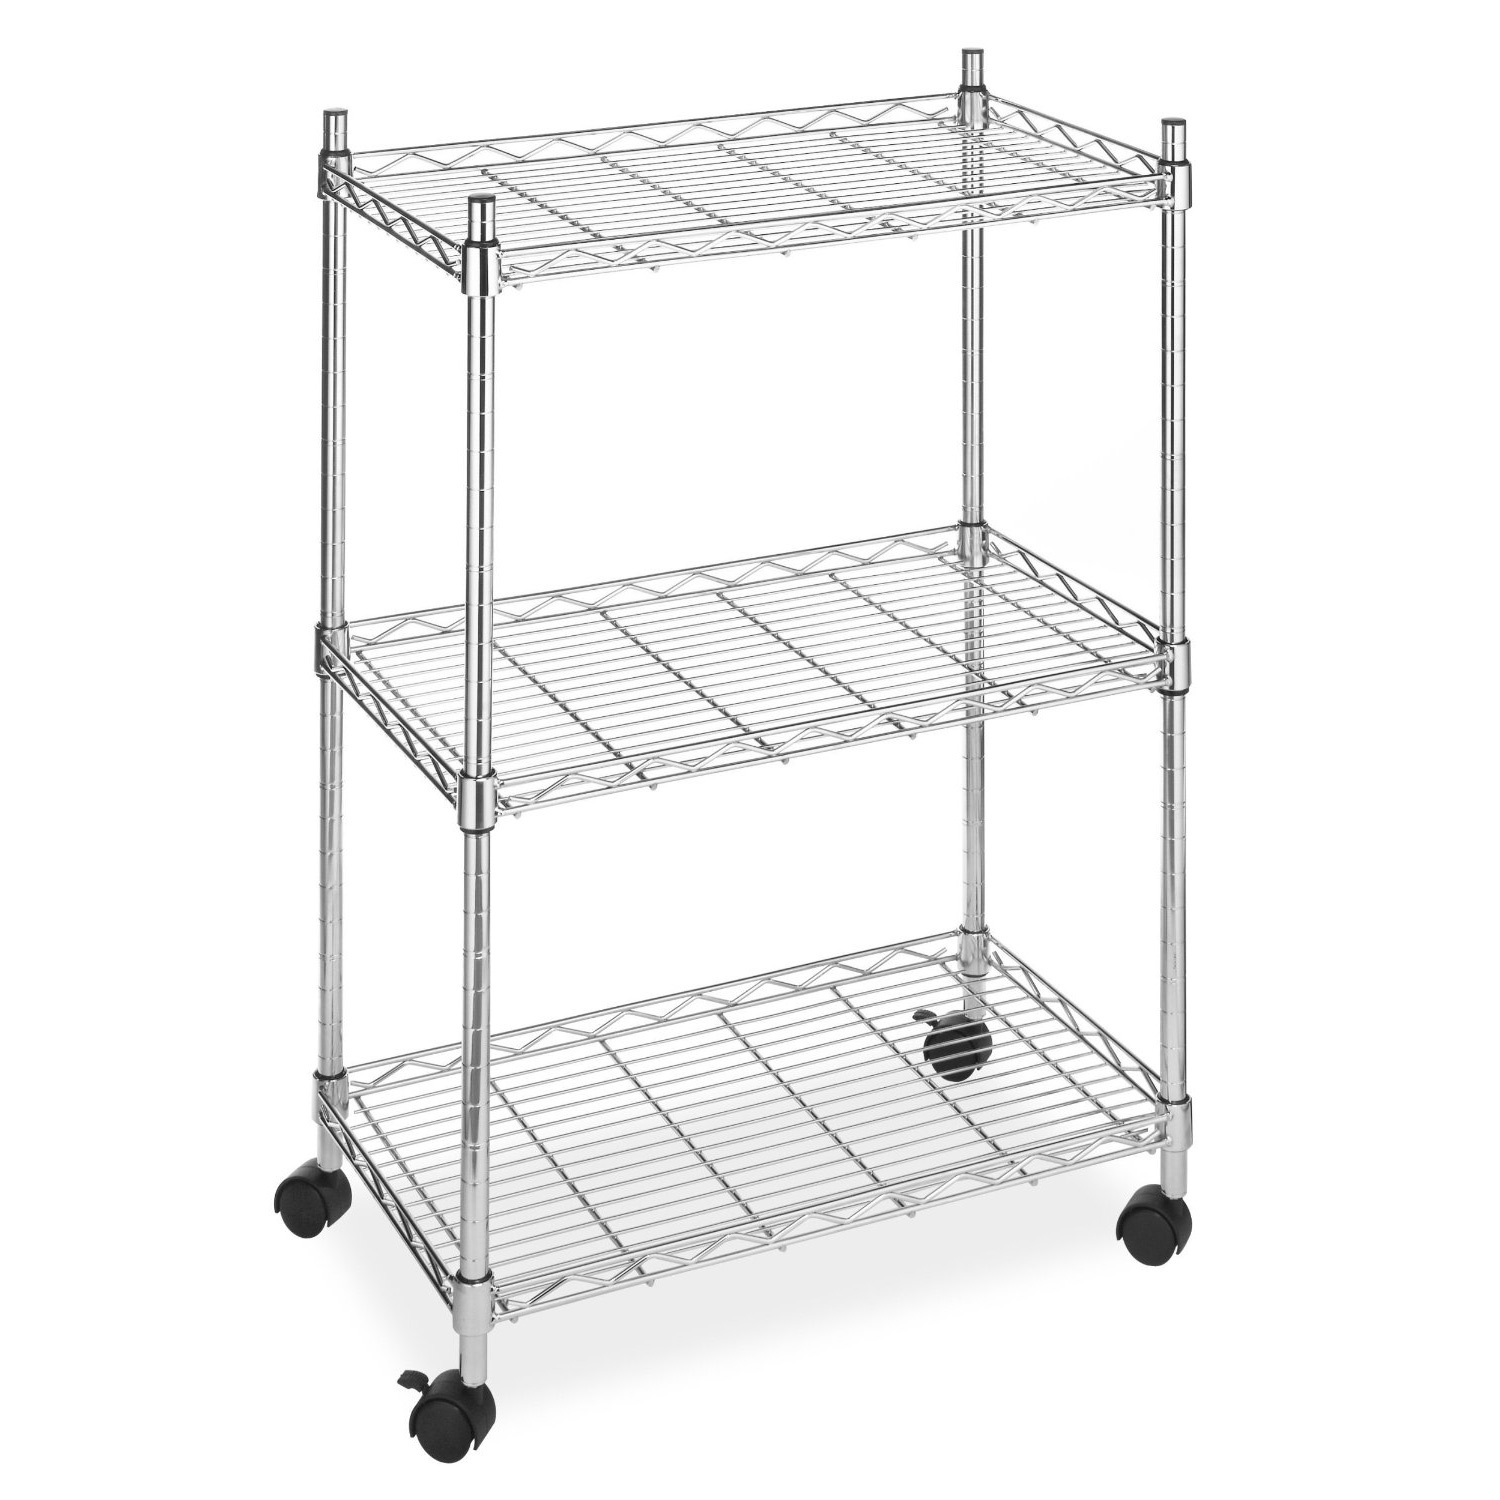 """3-Shelf Chrome Steel Storage Cart on Wheels, WSCC36971 :  This 3-Shelf Chrome Steel Storage Cart on Wheels is a handy helper almost anywhere in your house. Use it in your kitchen for serving meals or for storing your mixer, bread machine and pots and pans. It holds computer equipment in the office, towels in the bathroom or tools in the garage. Made of heavy-duty chrome-plated steel, this cart can hold up to 250 lbs. It's very stable and built to last, and it has 3 shelves with raised sides to prevent items from rolling off. Includes rolling casters. Imported. 33-1/2Hx22-1/2Wx13-1/4D"""". 10-Year limited warranty; No tool assembly."""